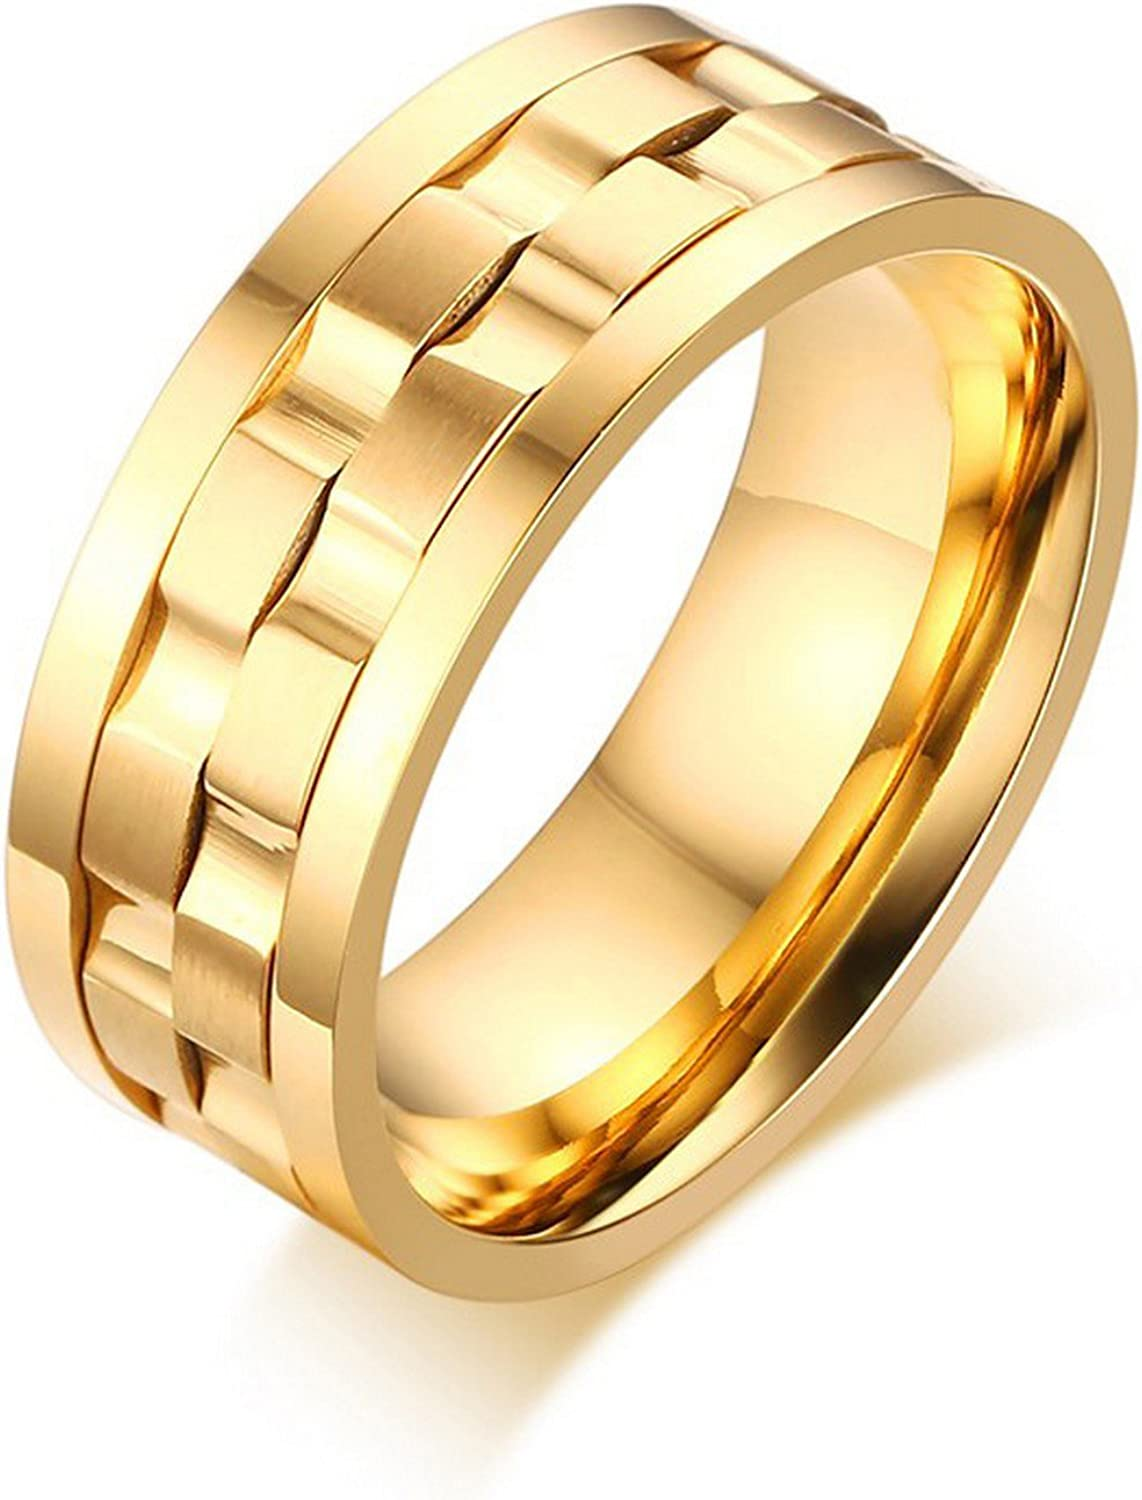 Slyq Jewelry Silver//Gold Color Women//Men Jewelry Classic 3mm engagement rings fashion ring for women